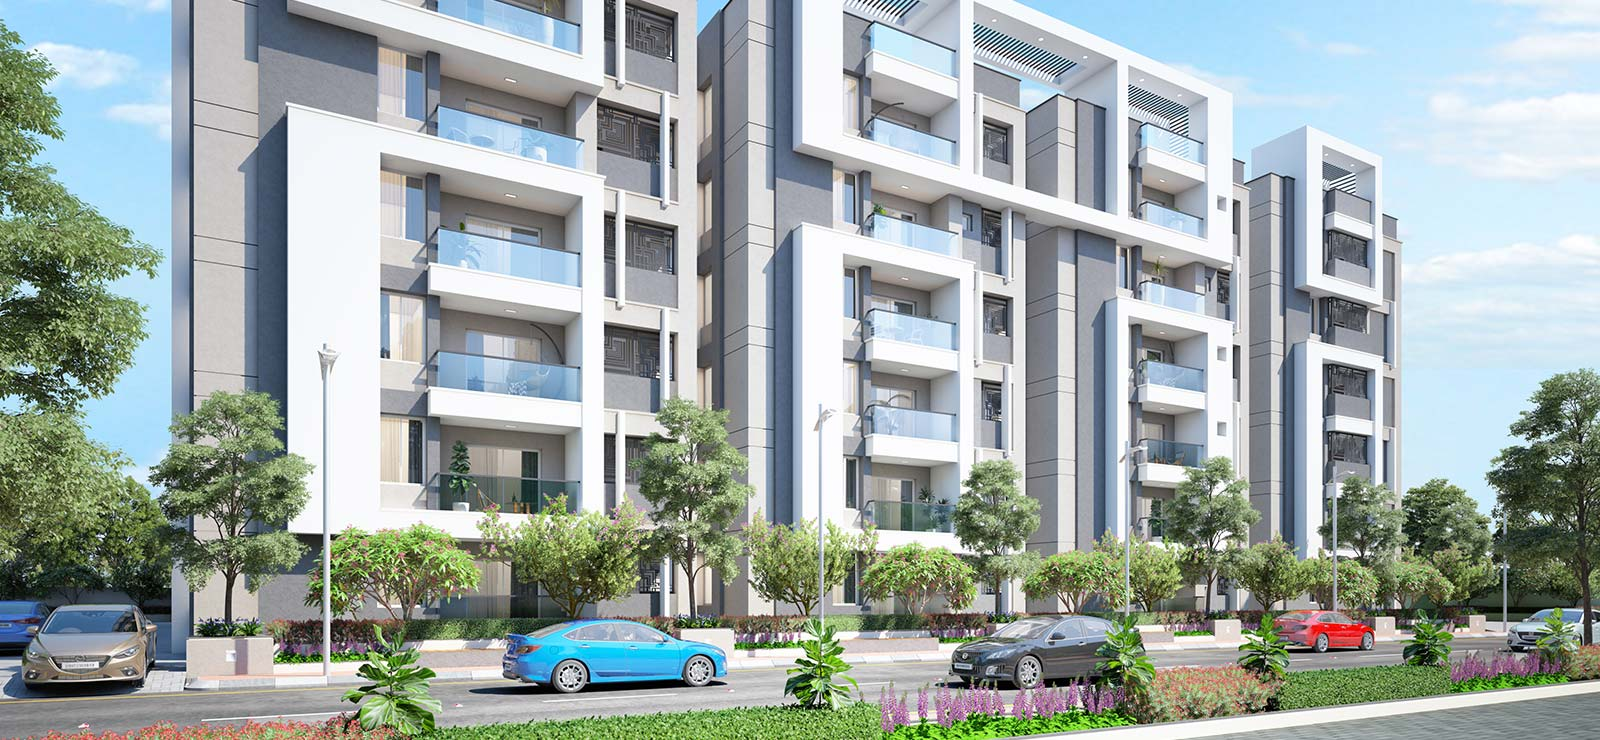 Apartments by Srigdha Projects